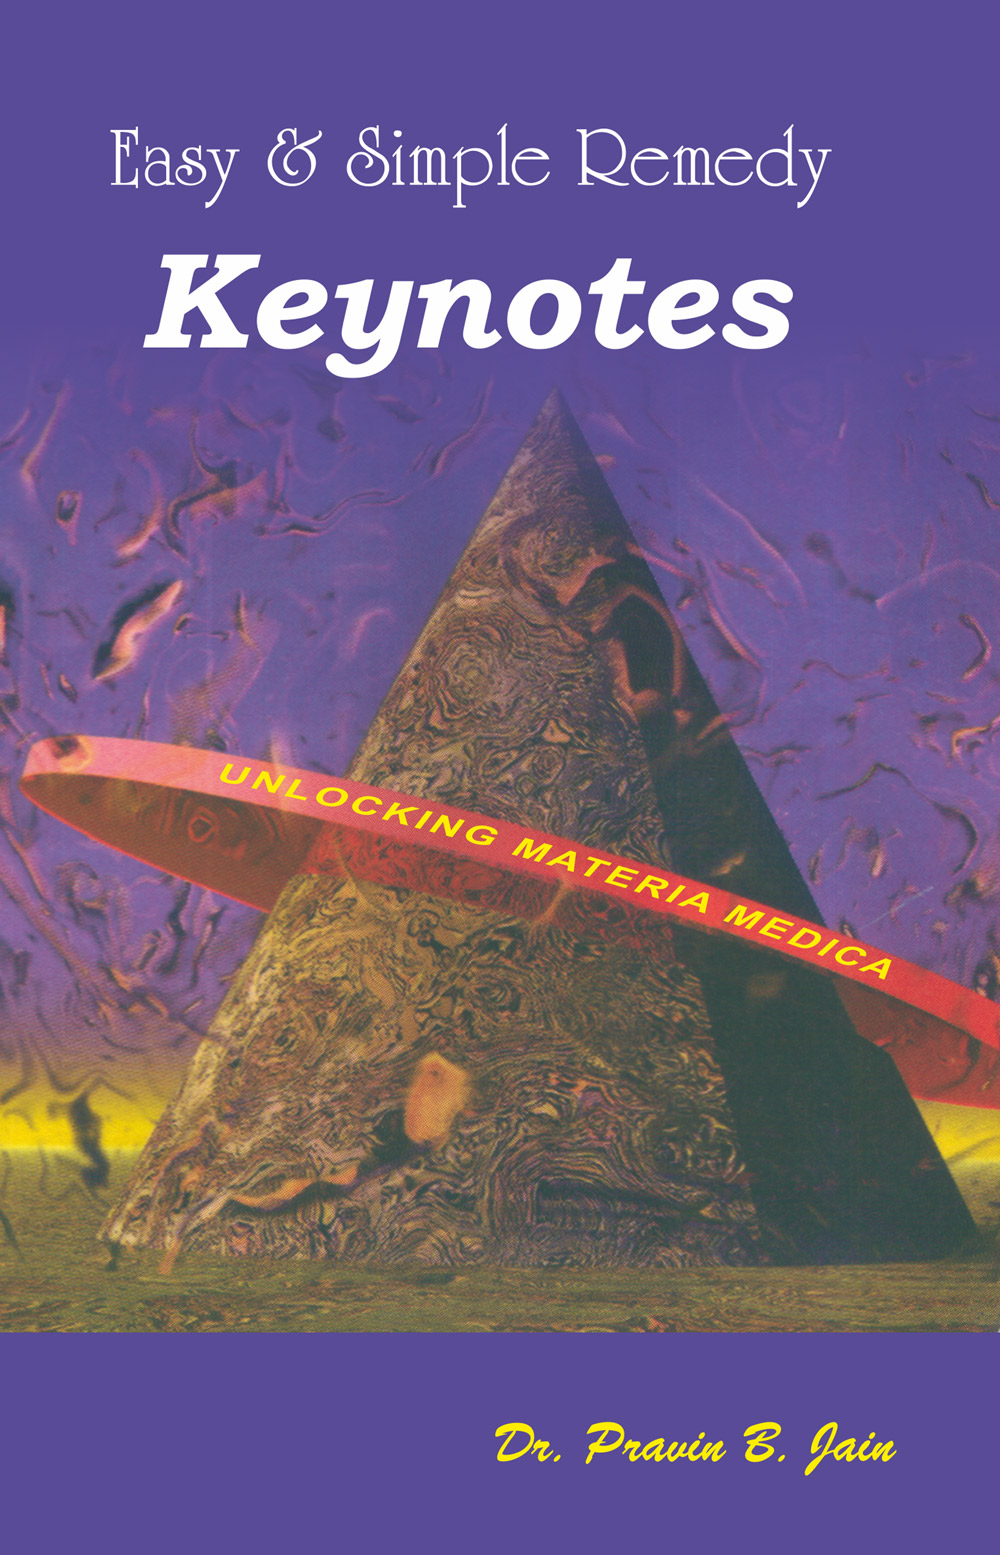 Easy and simple Remedy Keynotes